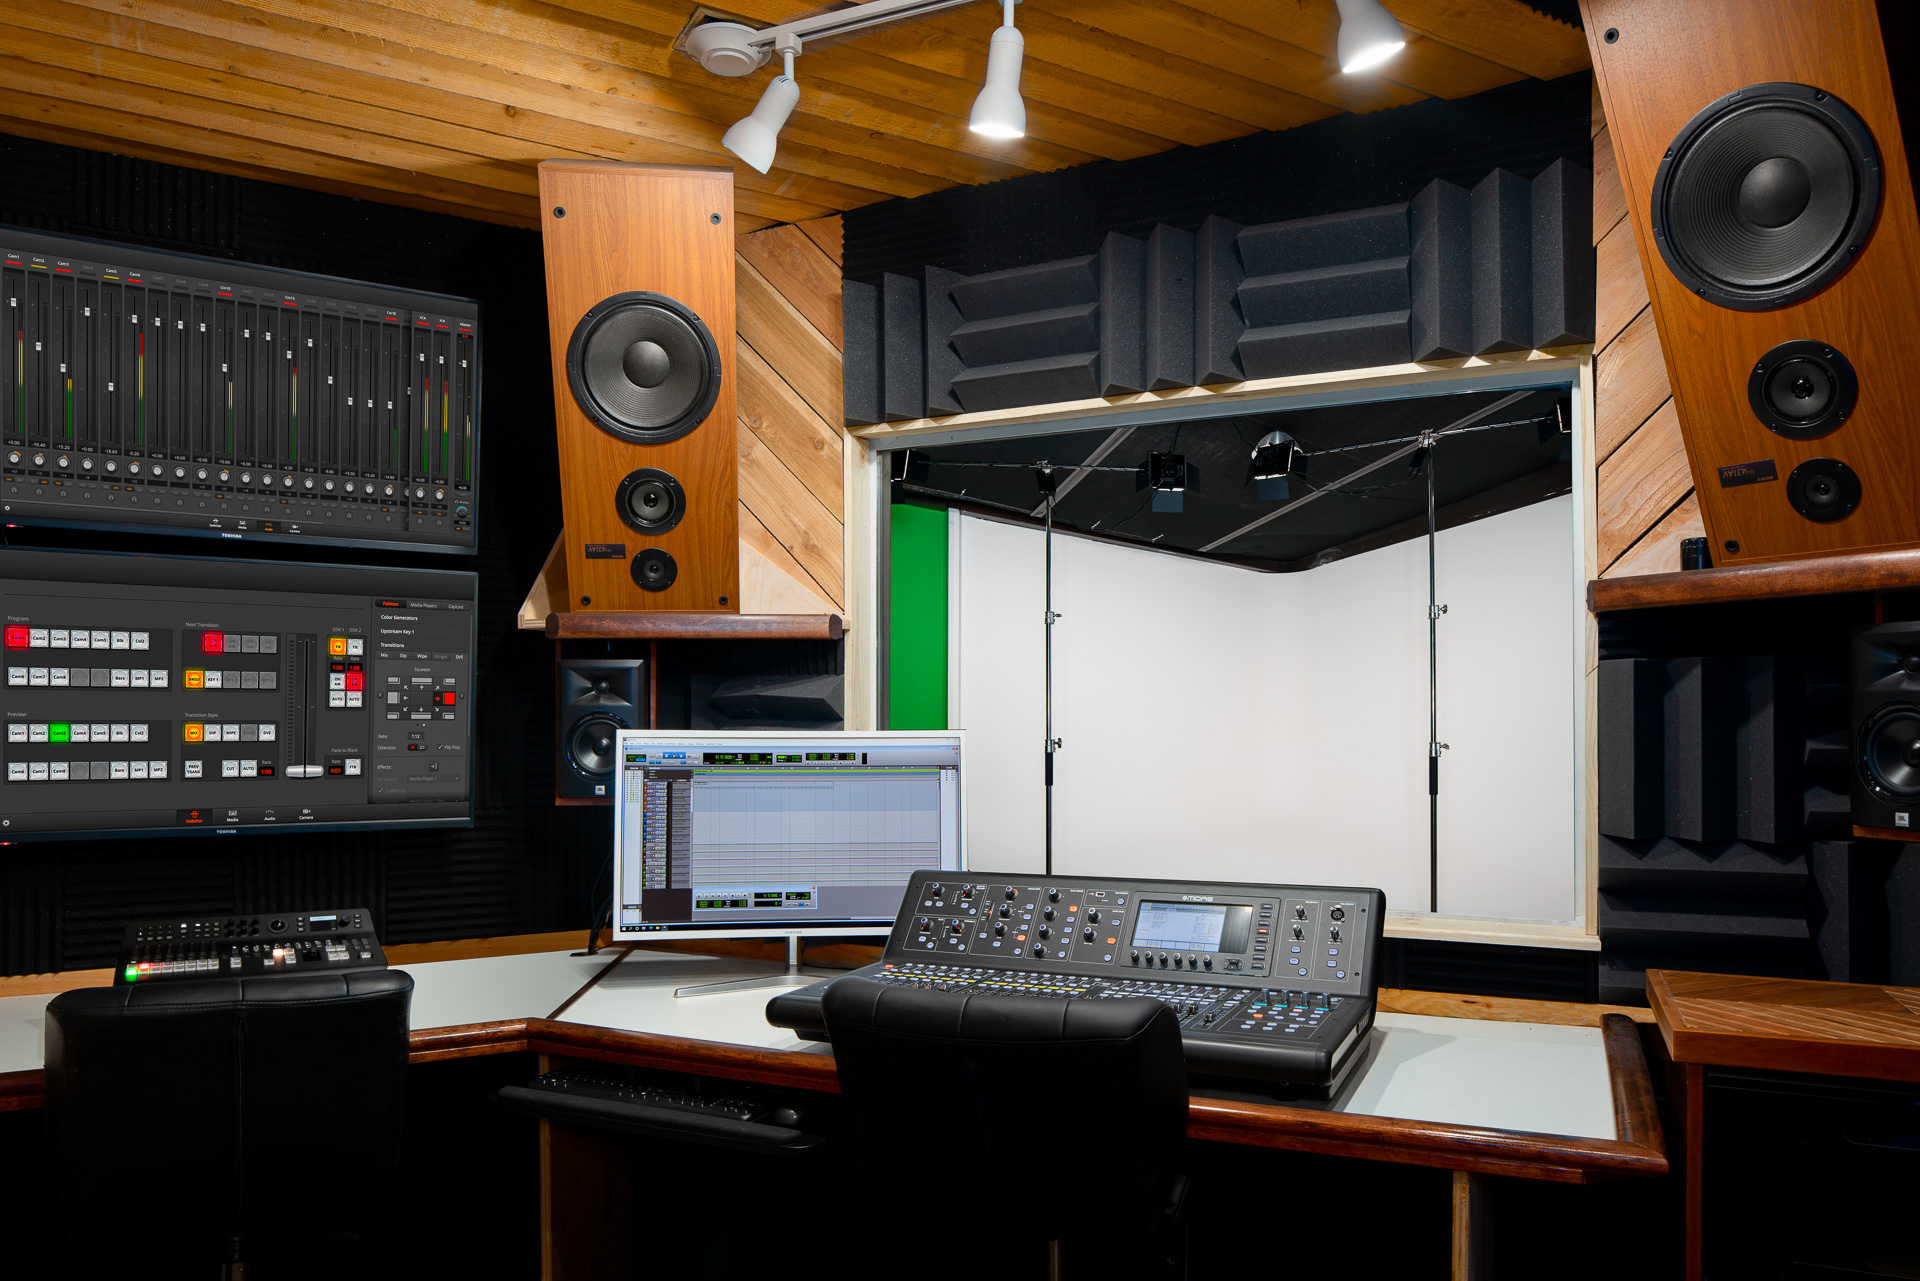 professional music recording studio in Spokane Washington & Coeur d'Alene Idaho